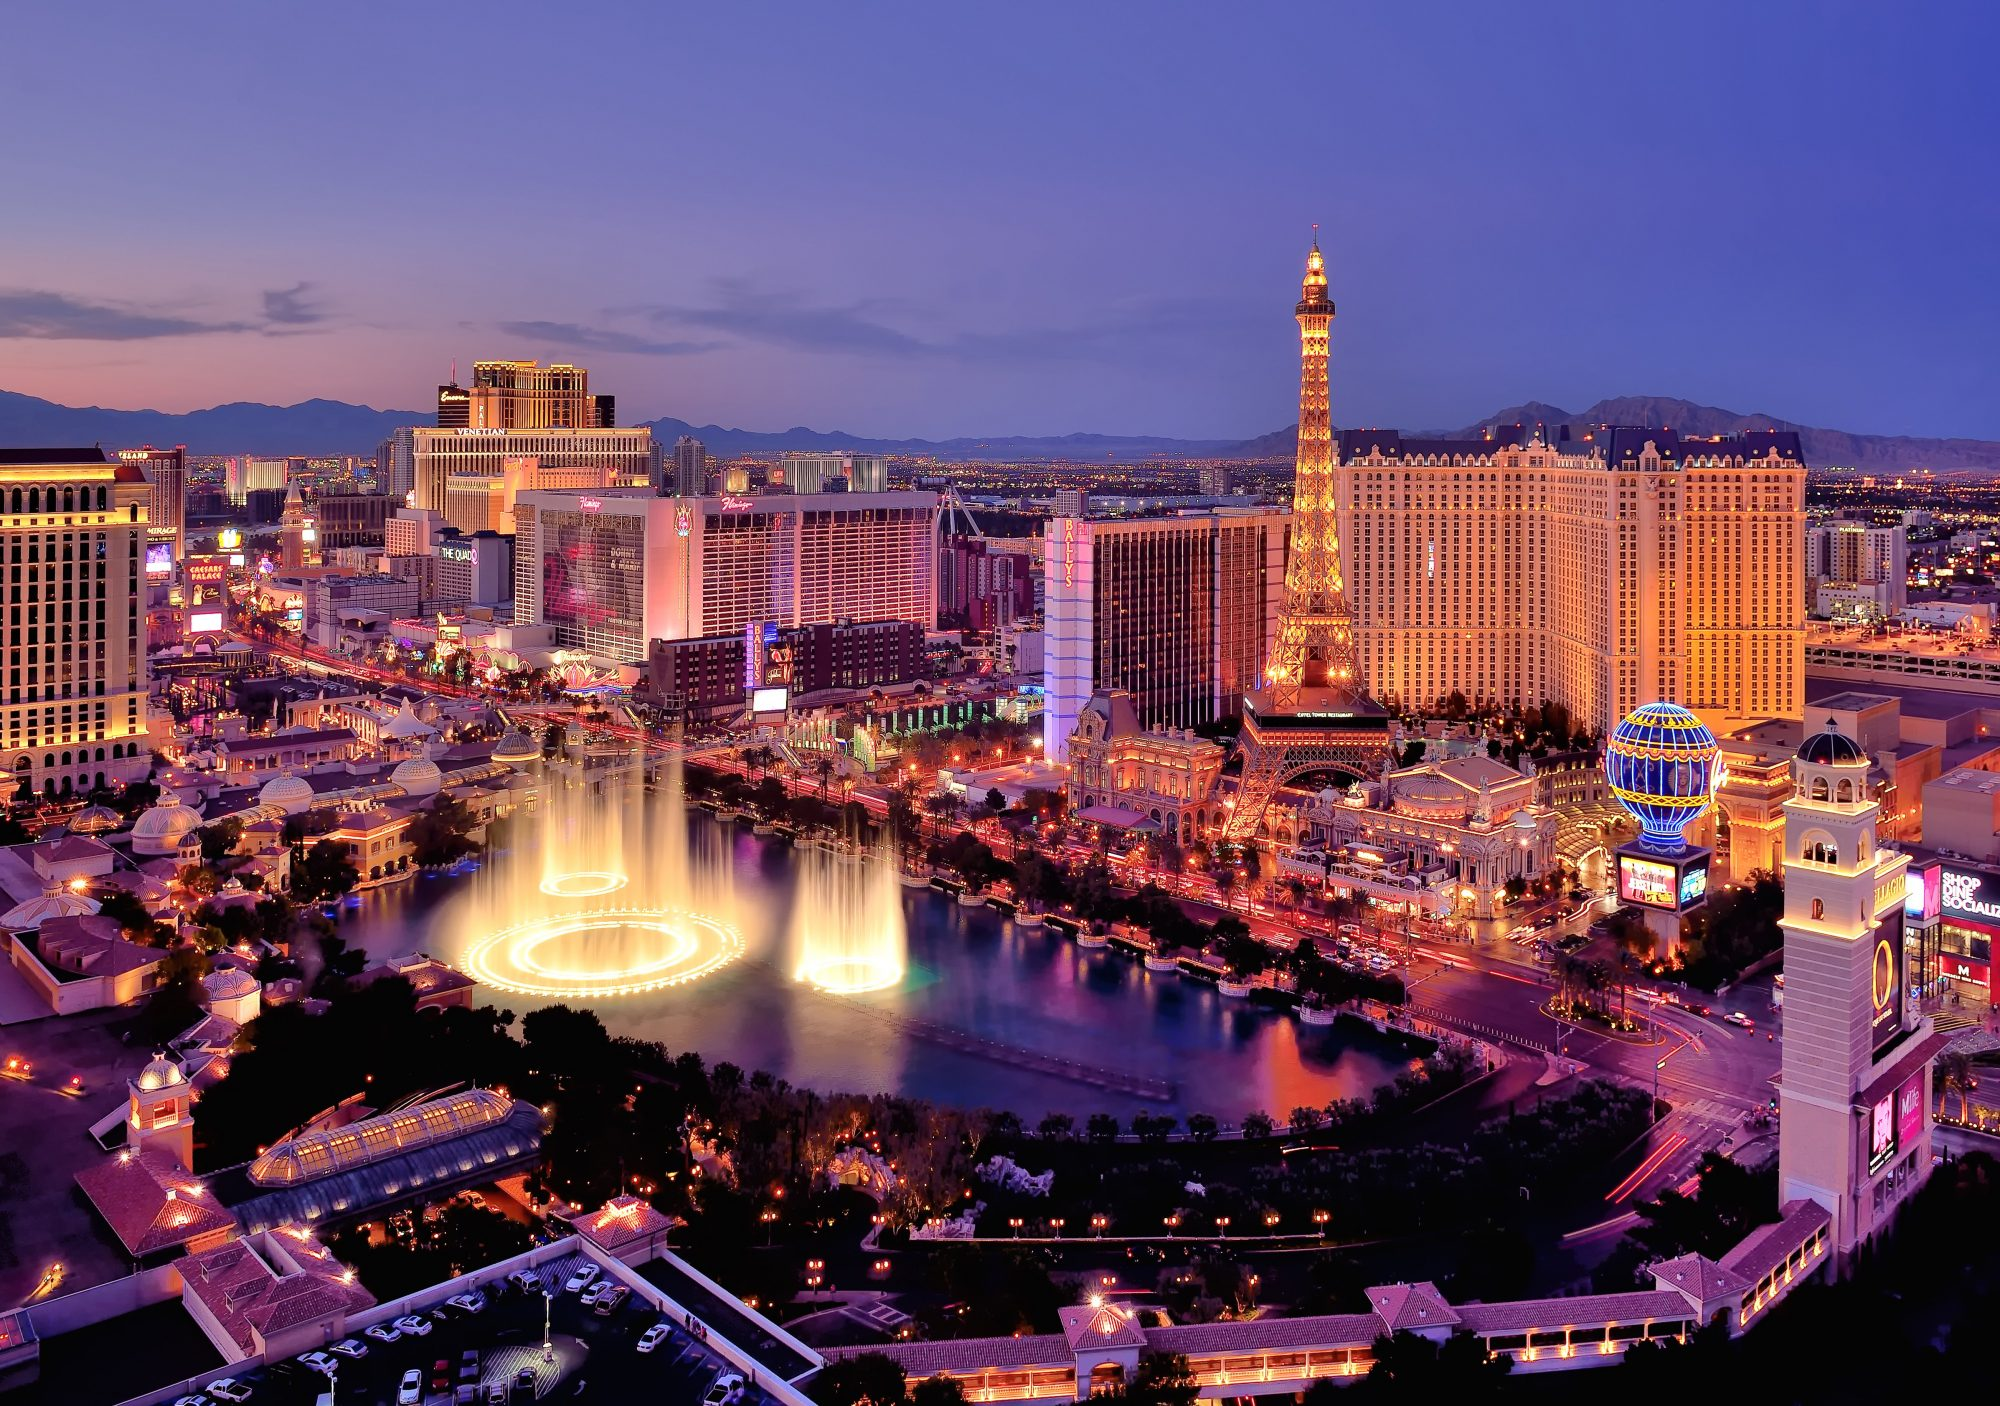 City skyline at night with Bellagio Hotel water fountains, Las Vegas.